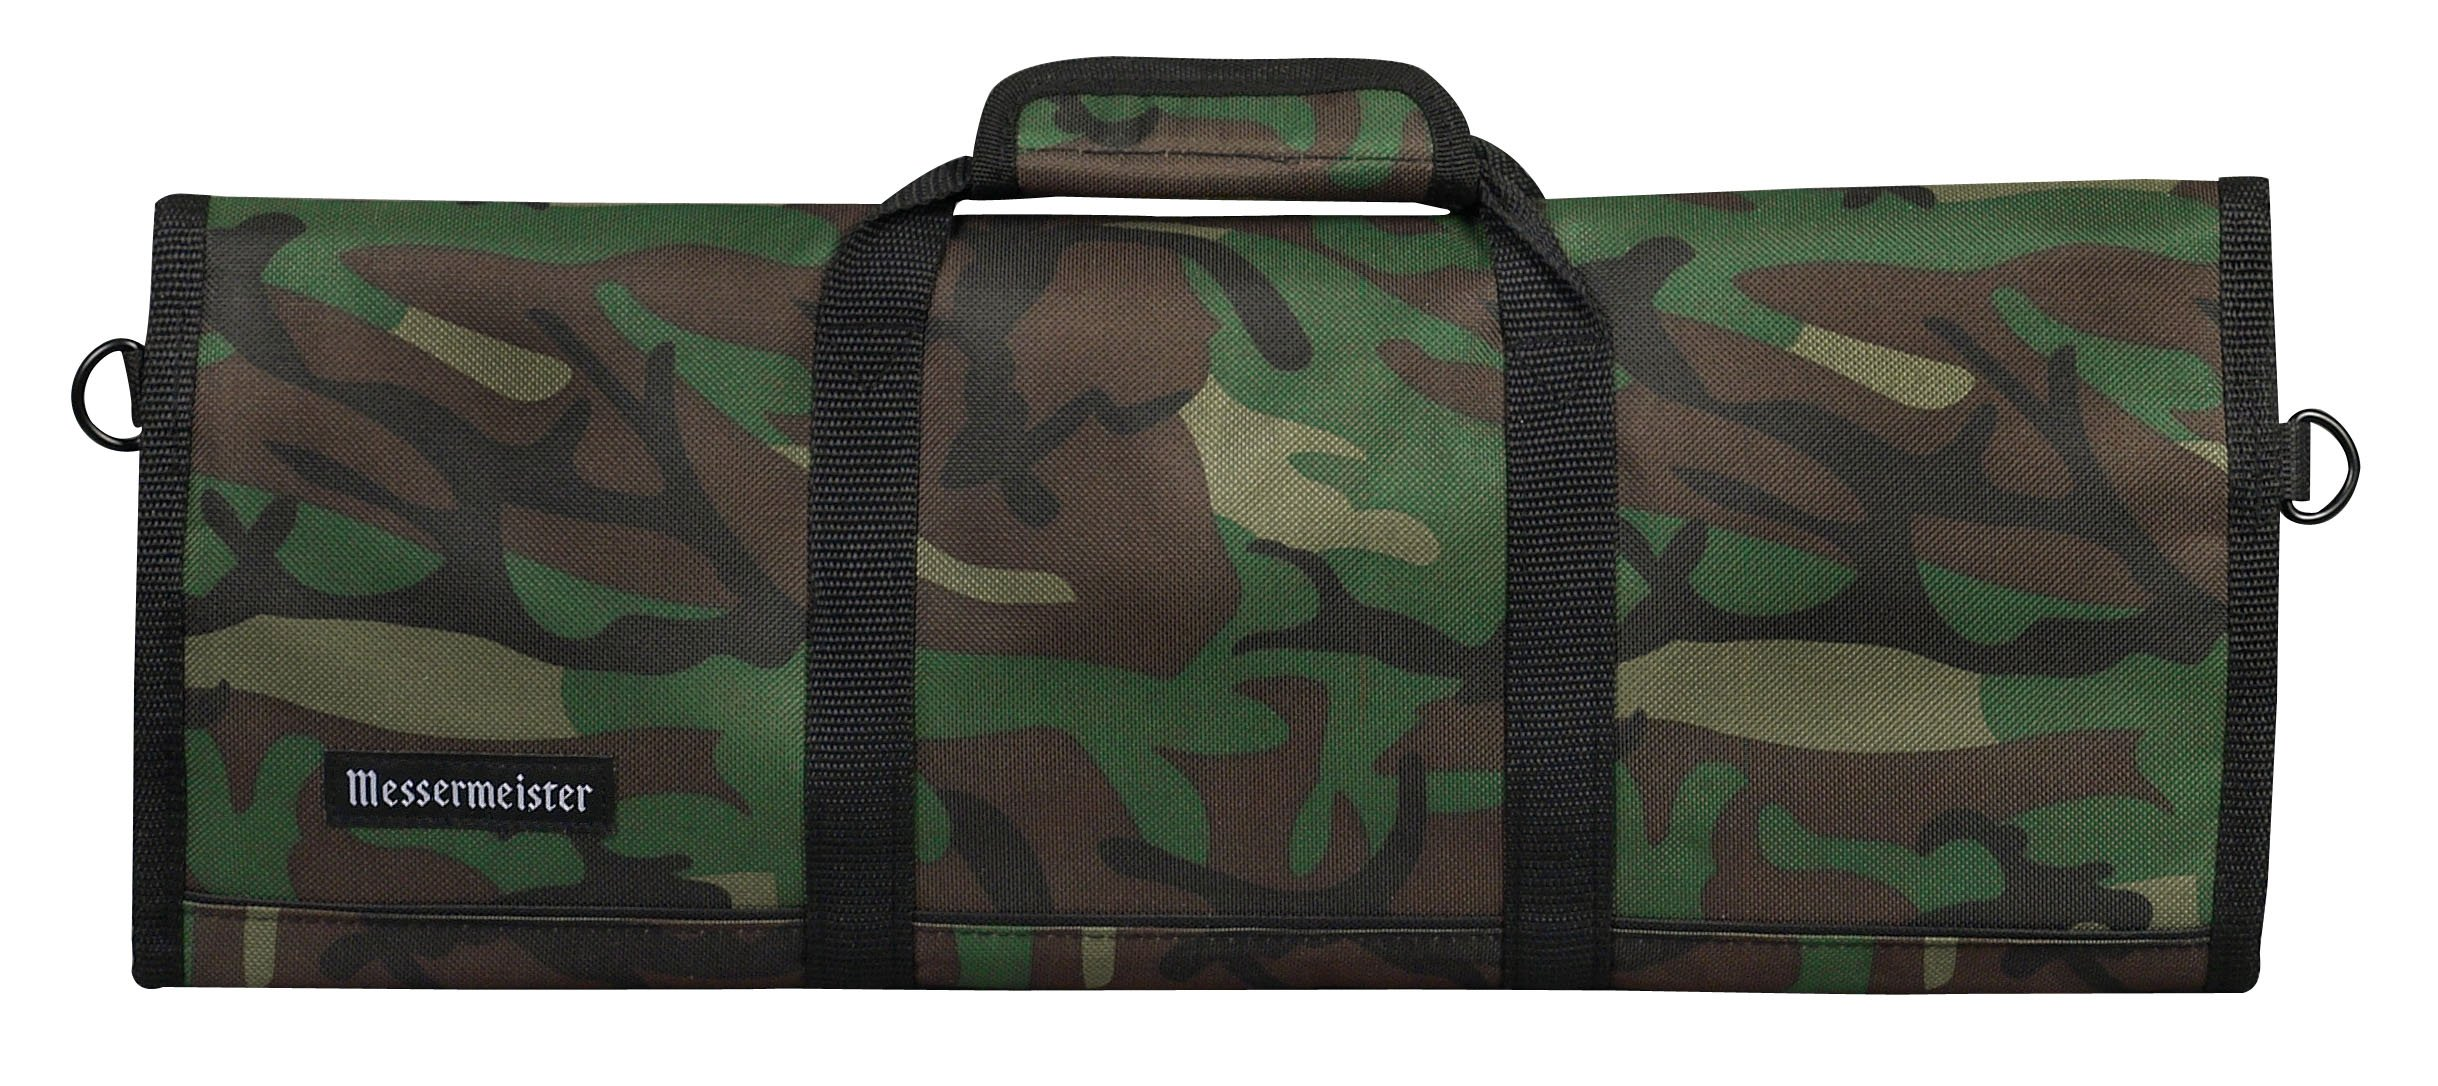 Messermeister 12-Pocket Padded Knife Roll, Camouflage by Messermeister (Image #1)